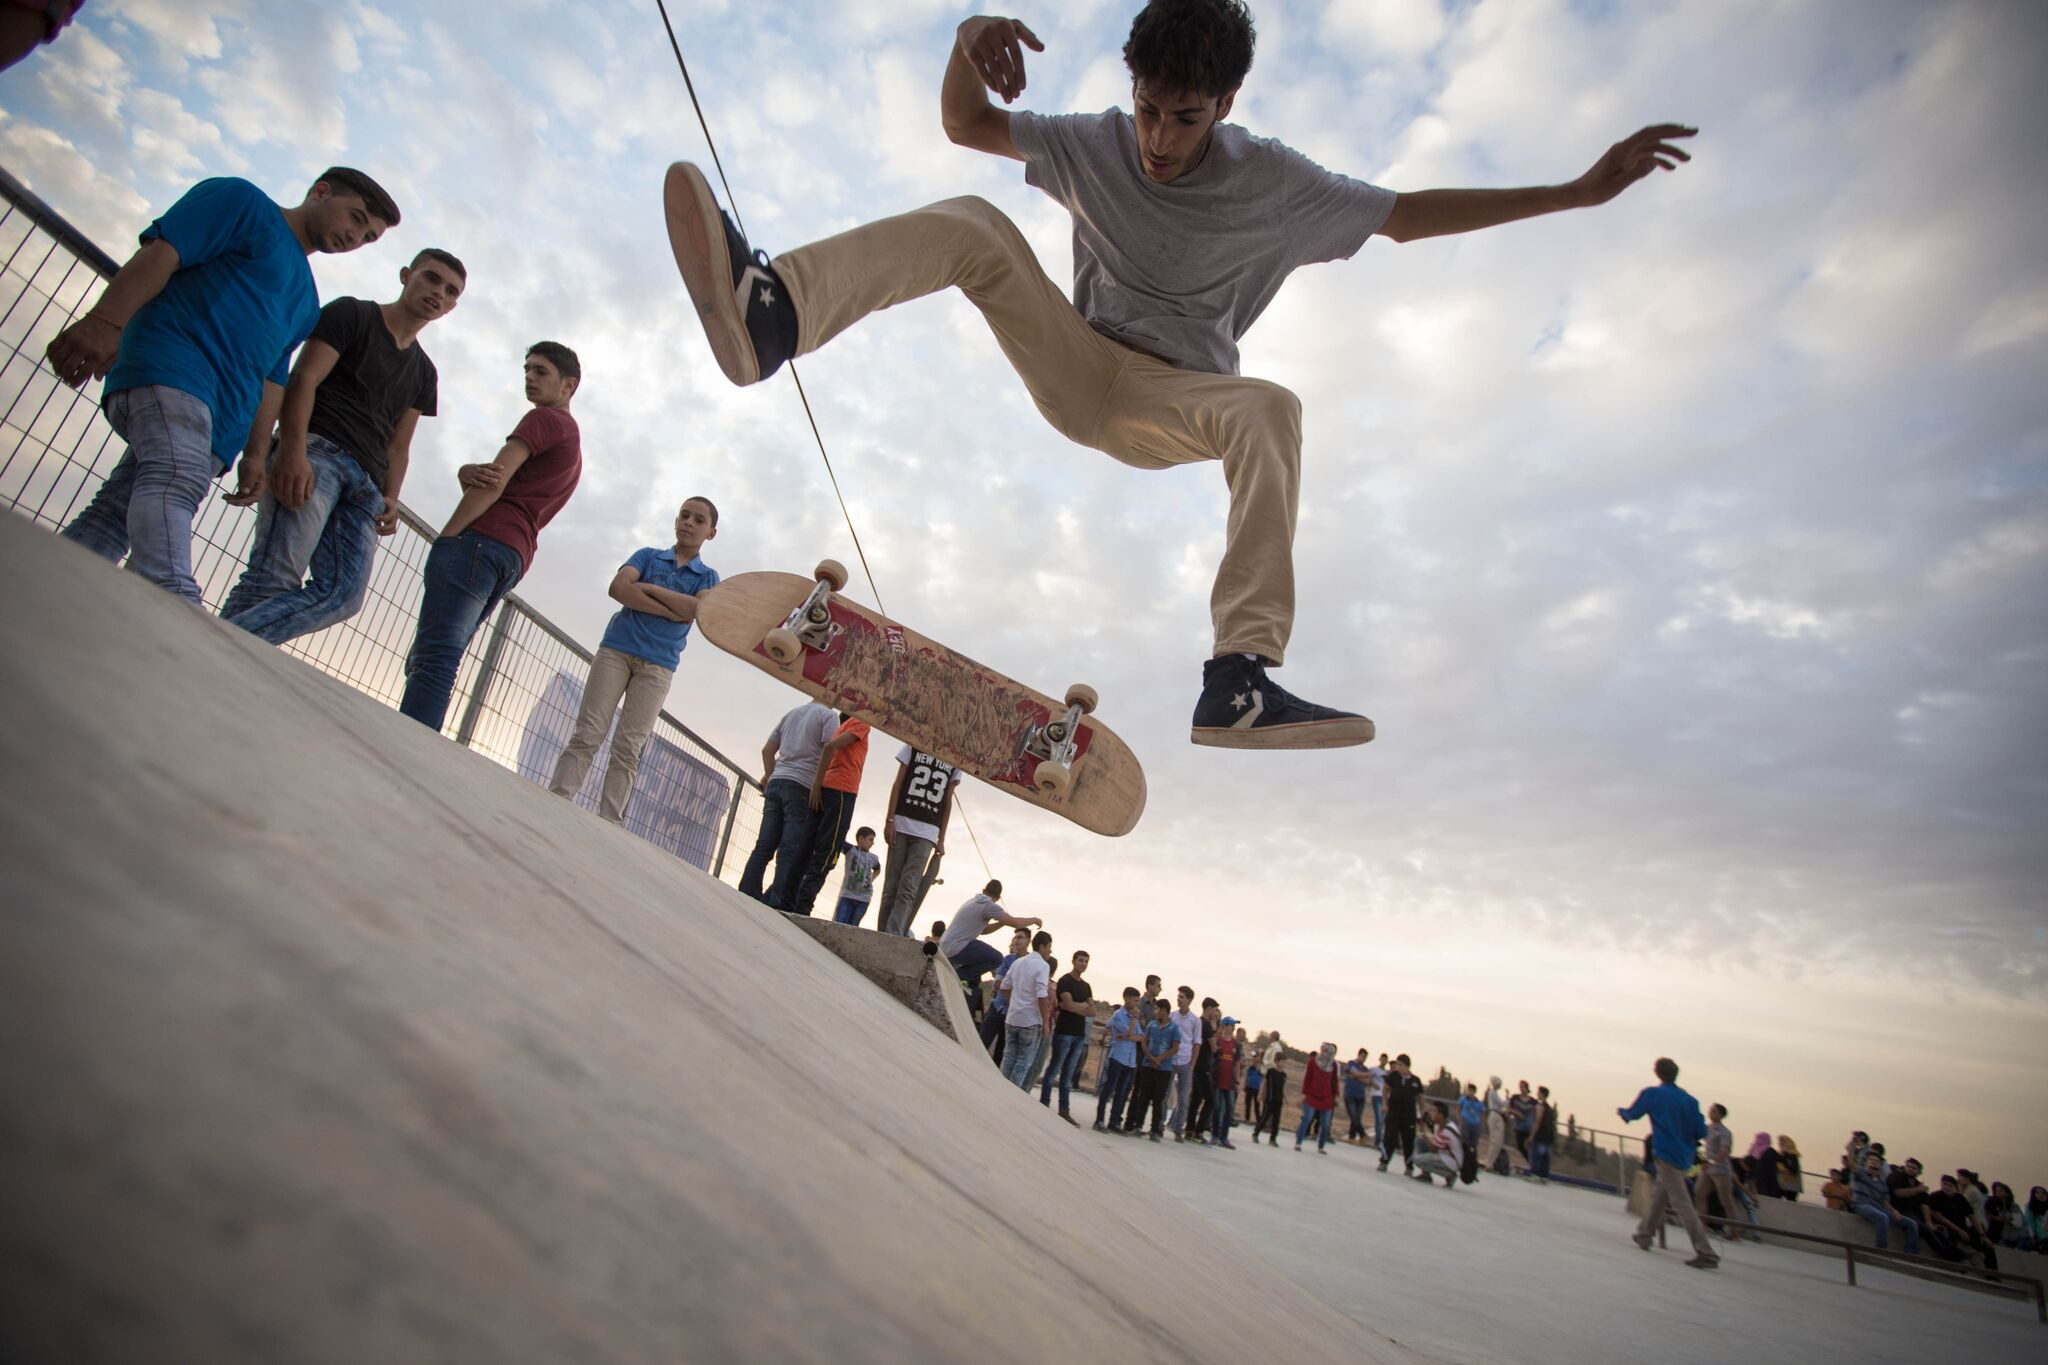 Skateboarders aiming to compete in its Olympic debut next year will be among panellists at Pushing Boarders in Malmö, Sweden ©Emil Agerskov